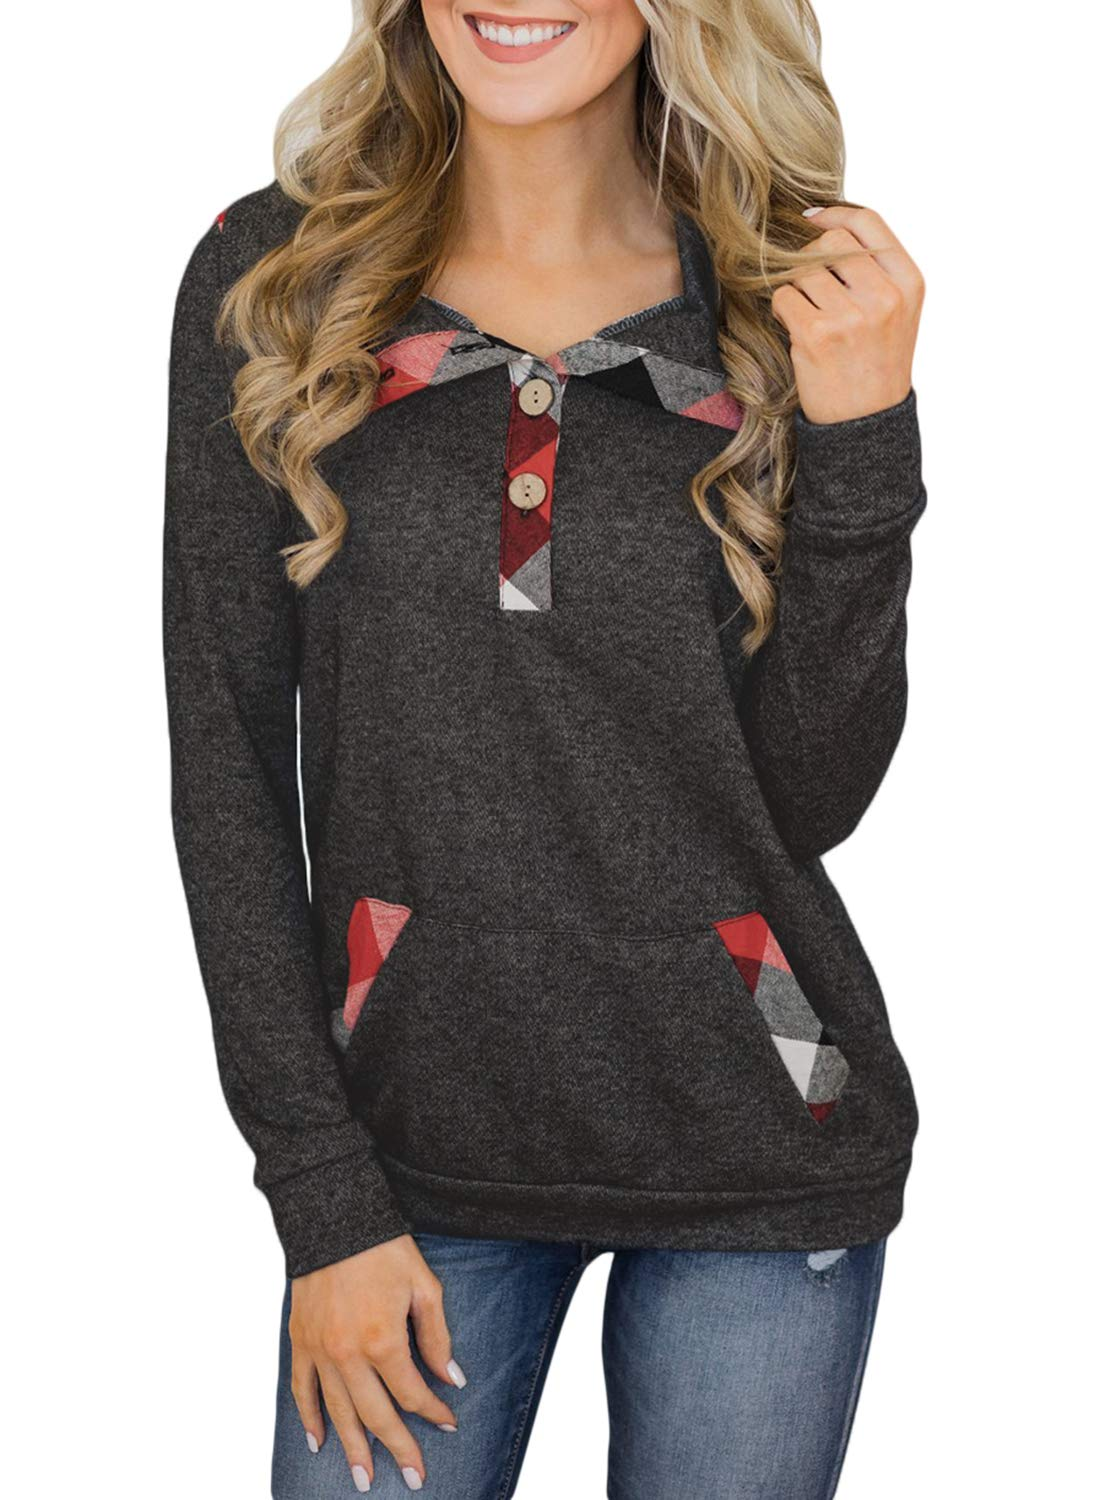 Aleumdr Winter Sweatshirt for Women Juniors Plus Size Plaid Long Sleeve Button Neck Pullover Tops with Pockets Gray Medium 8 10 by Aleumdr